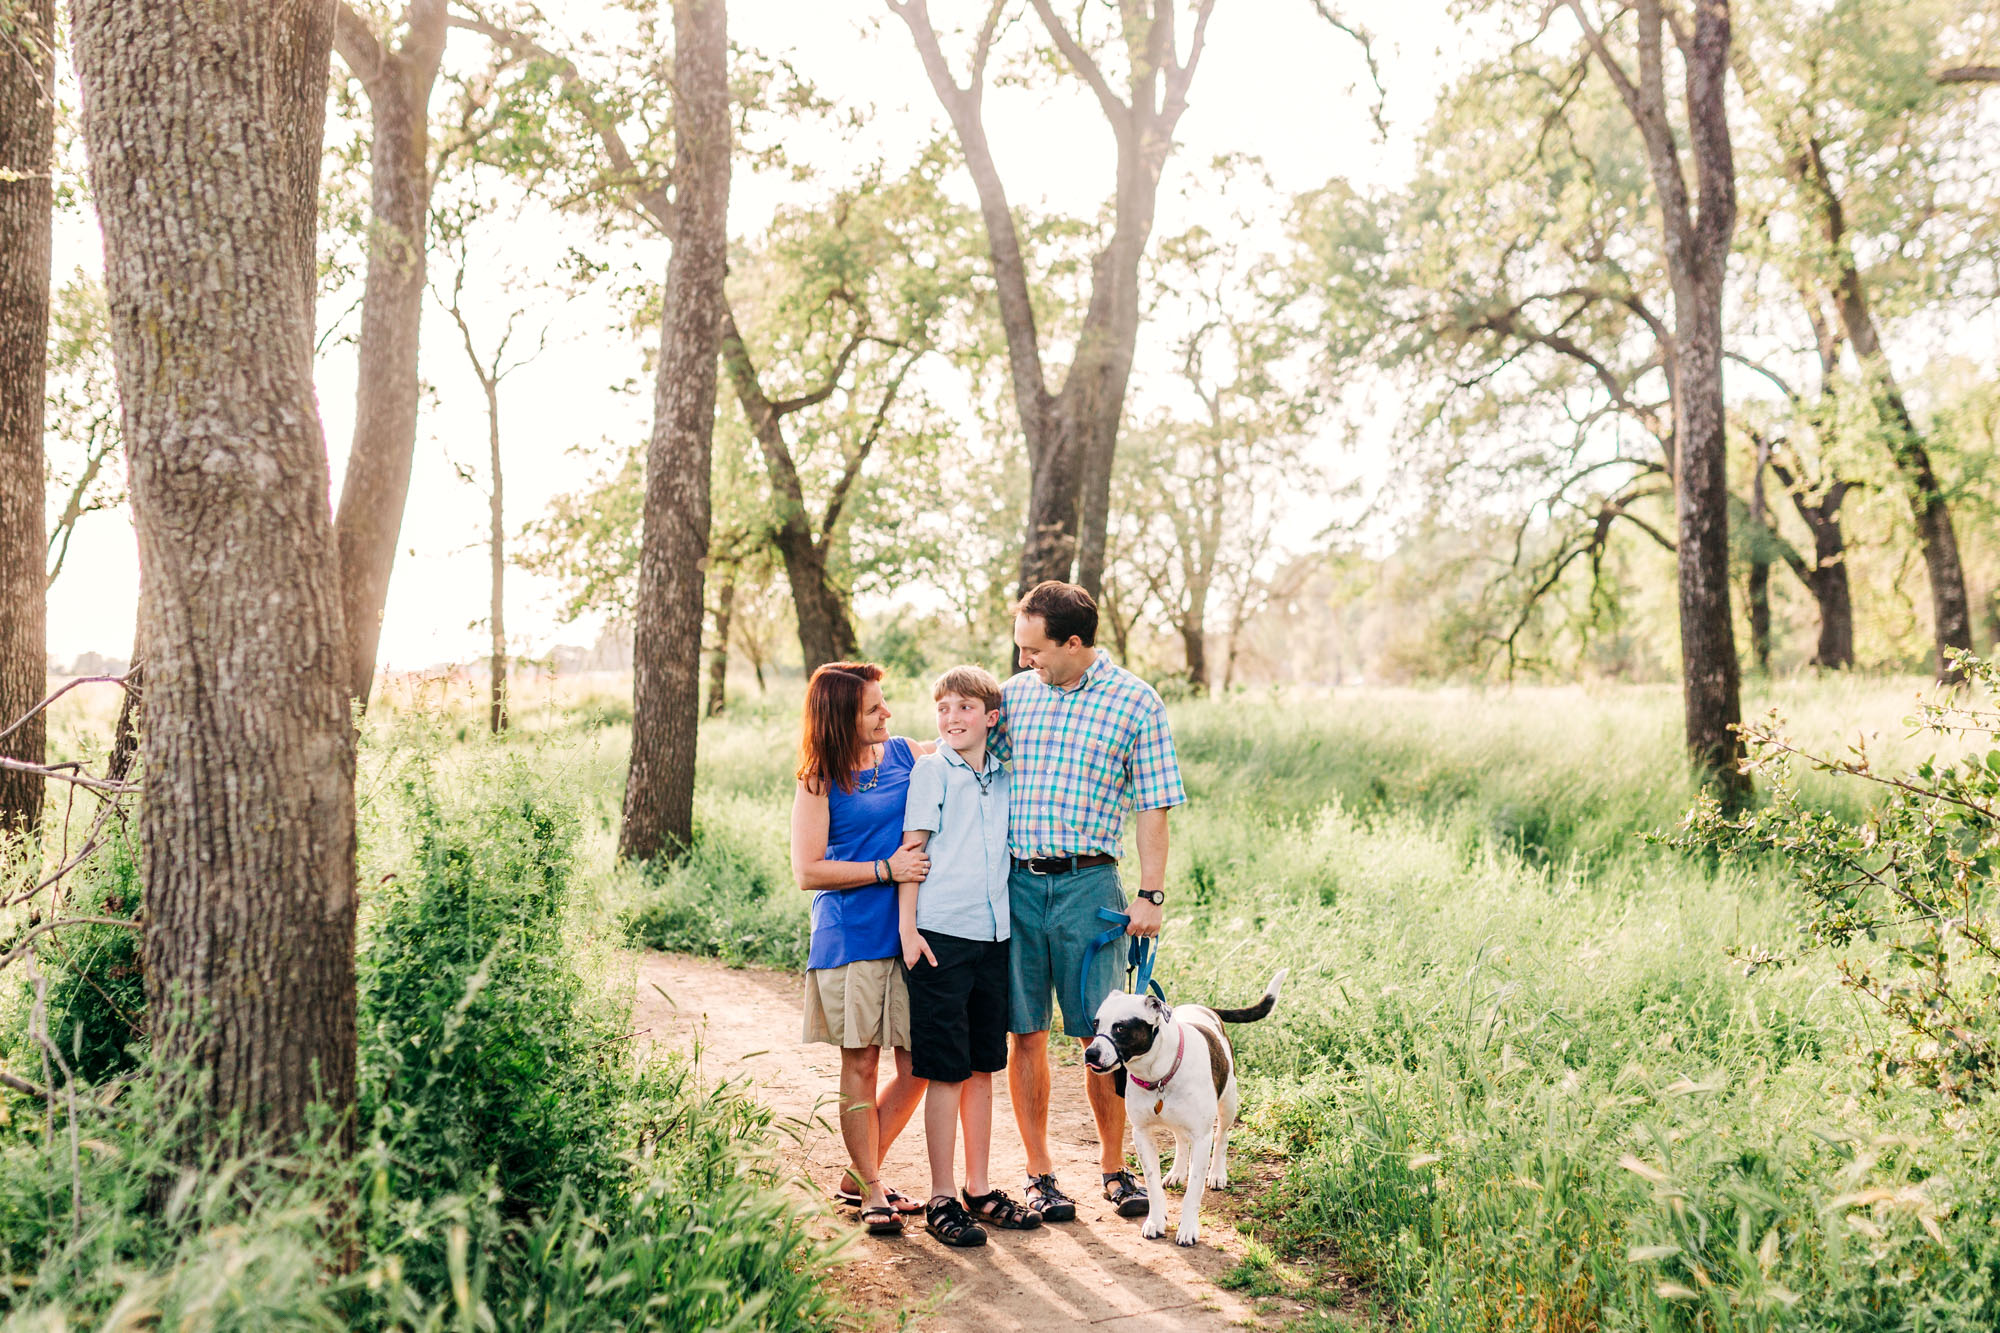 A family connects during a photo session with lifestyle photographer Amy Wright in Roseville, California.